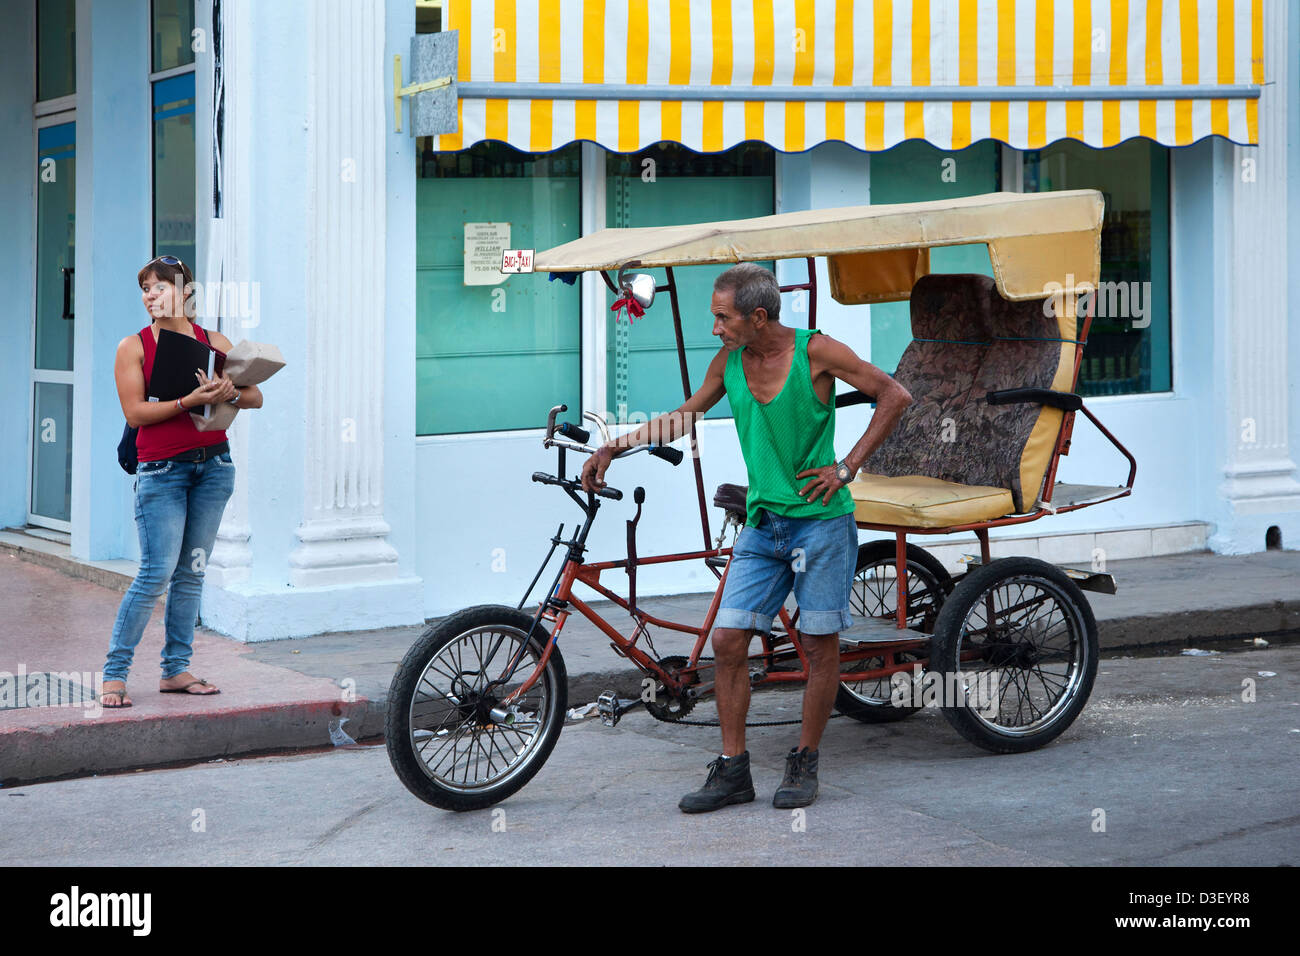 Man with three-wheeled bicycle taxi waiting for tourists in Cienfuegos, Cuba, Caribbean - Stock Image